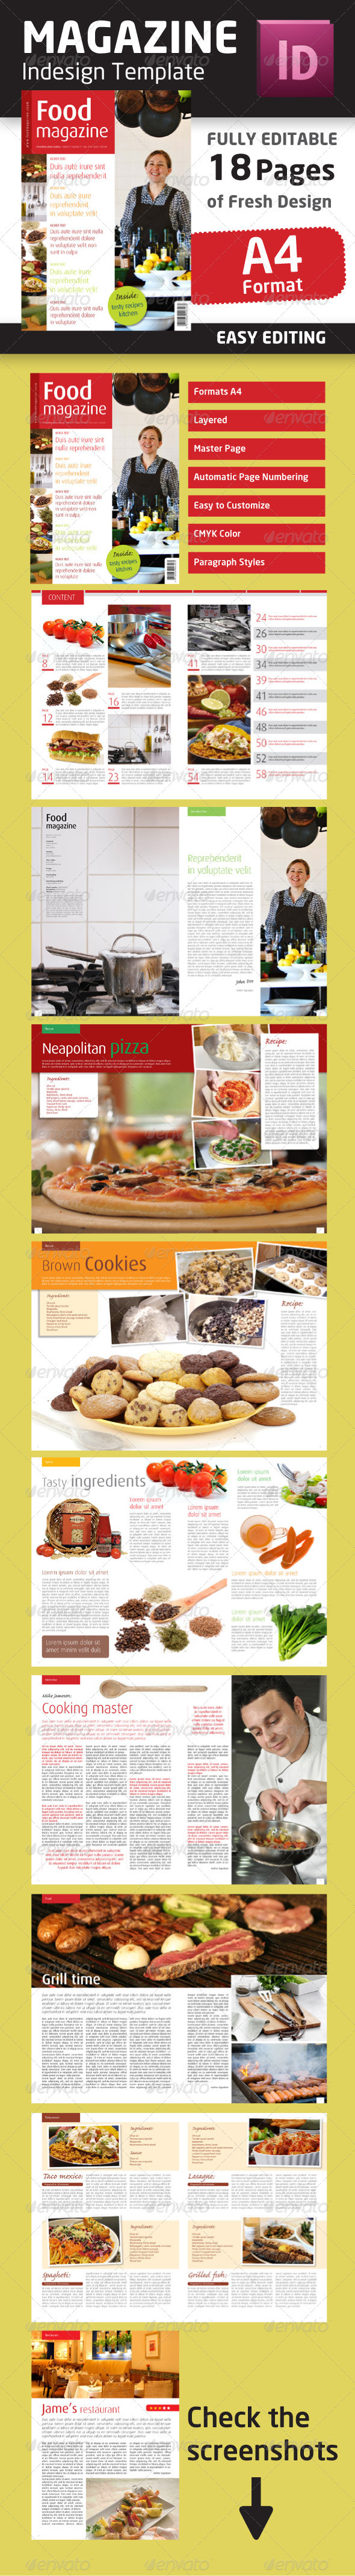 GraphicRiver Indesign Food Magazine Template in A4 format 1474710